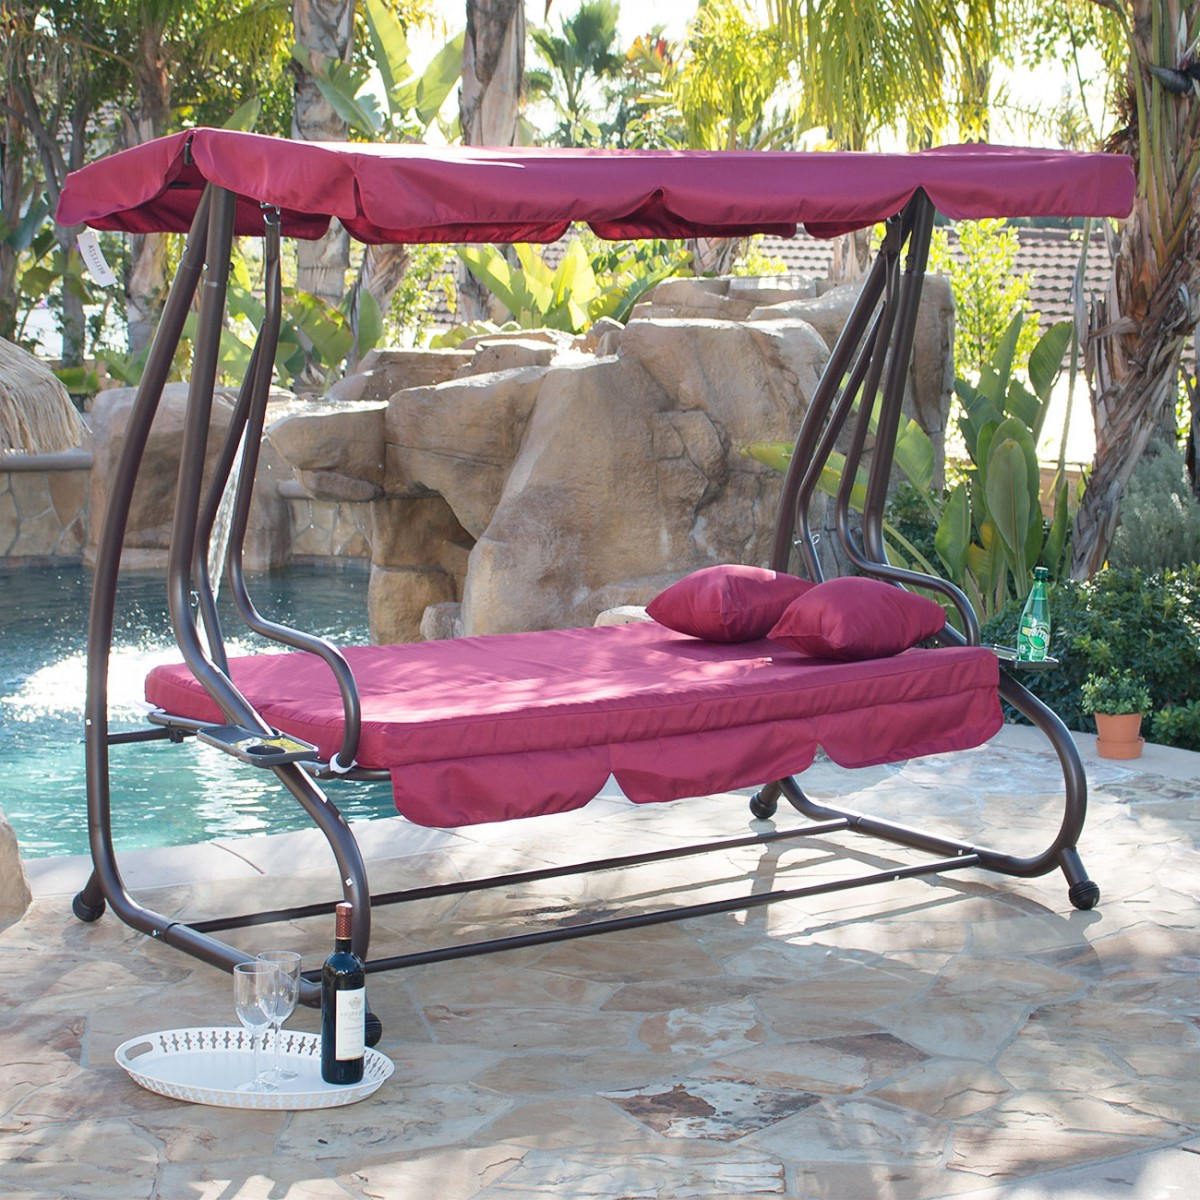 Belleze Outdoor Canopy Porch Swing/bed Hammock Tilt Canopy With Steel Frame (burgundy) Intended For Fashionable Porch Swings With Canopy (View 7 of 30)